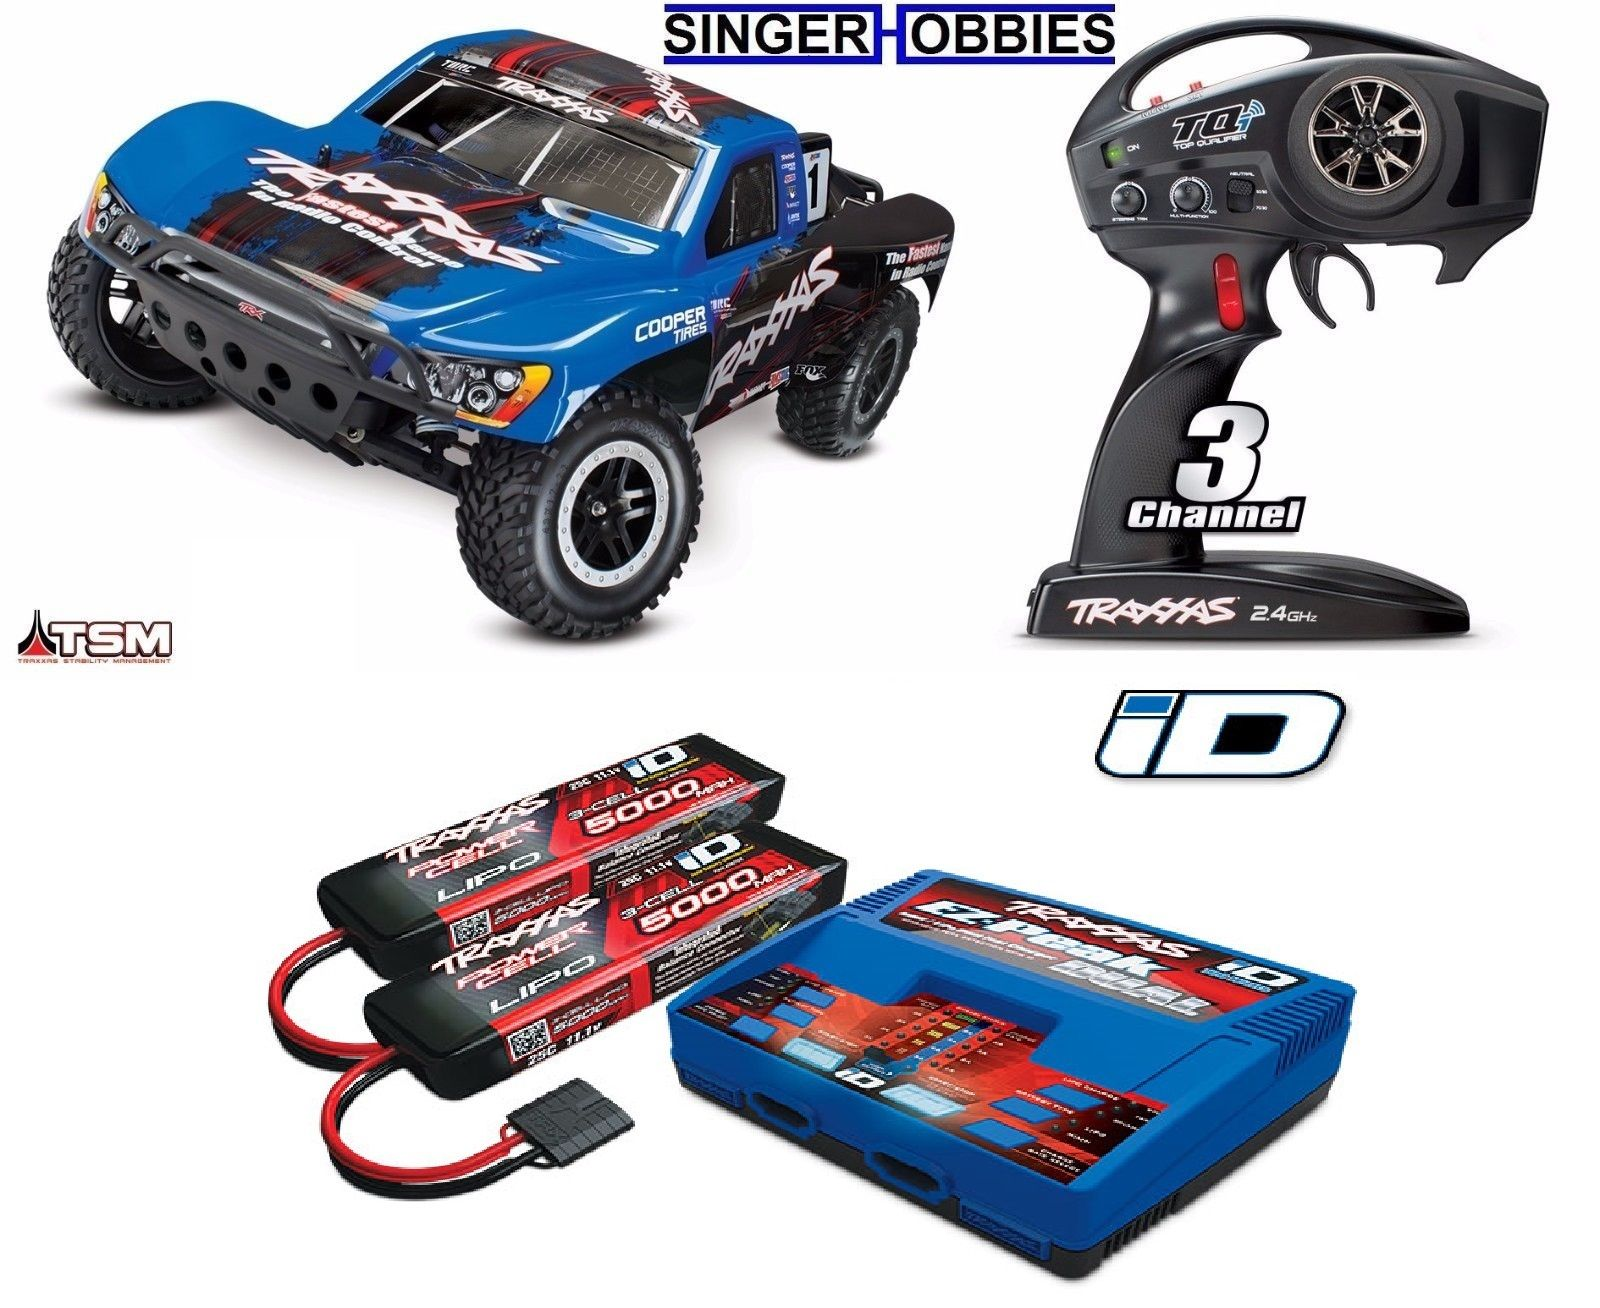 Traxxas 680864 1 10 Slash 4wd Brushless Sc Rtr R C Truck W Lipo Scale Pro 2wd Short Course Race 58034 Tra680864d3l Hh